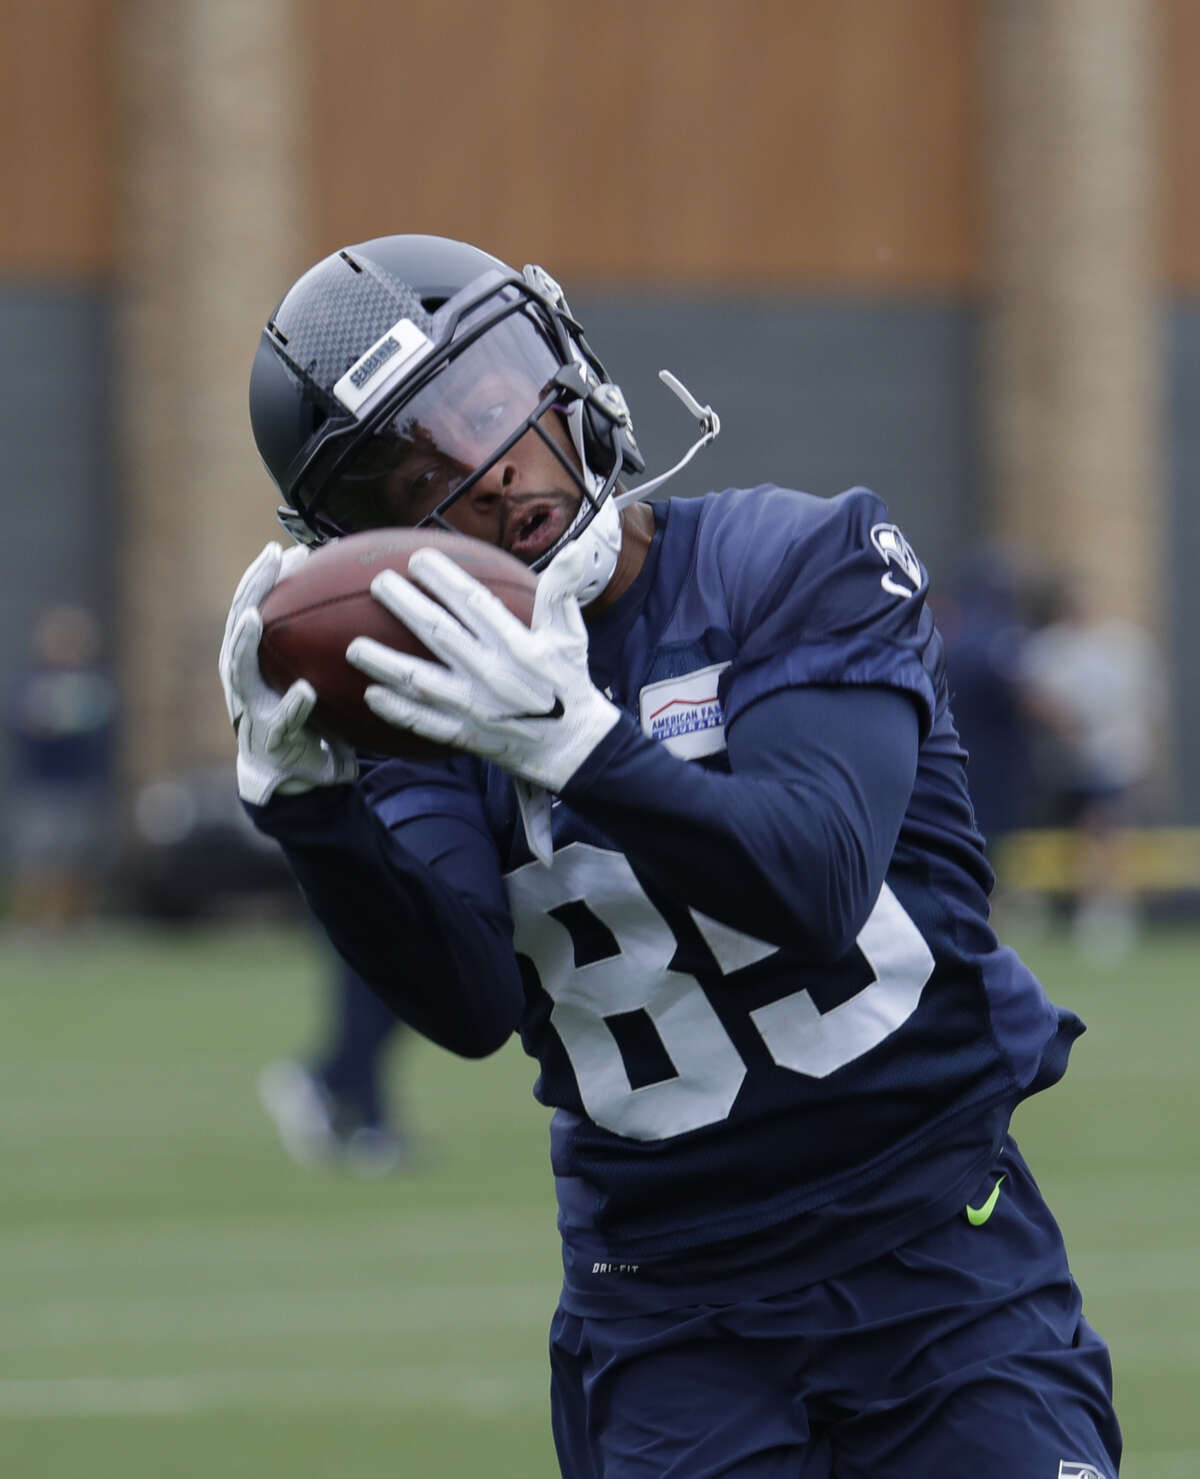 3. Wide receiver Keenan Reynolds Reynolds maintained his standing as a front runner for a roster spot at the competitive wide receiver spot. The former Navy quarterback had two catches, highlighted by a 20-yard grab that set up short touchdown run for running back Rashaad Penny.